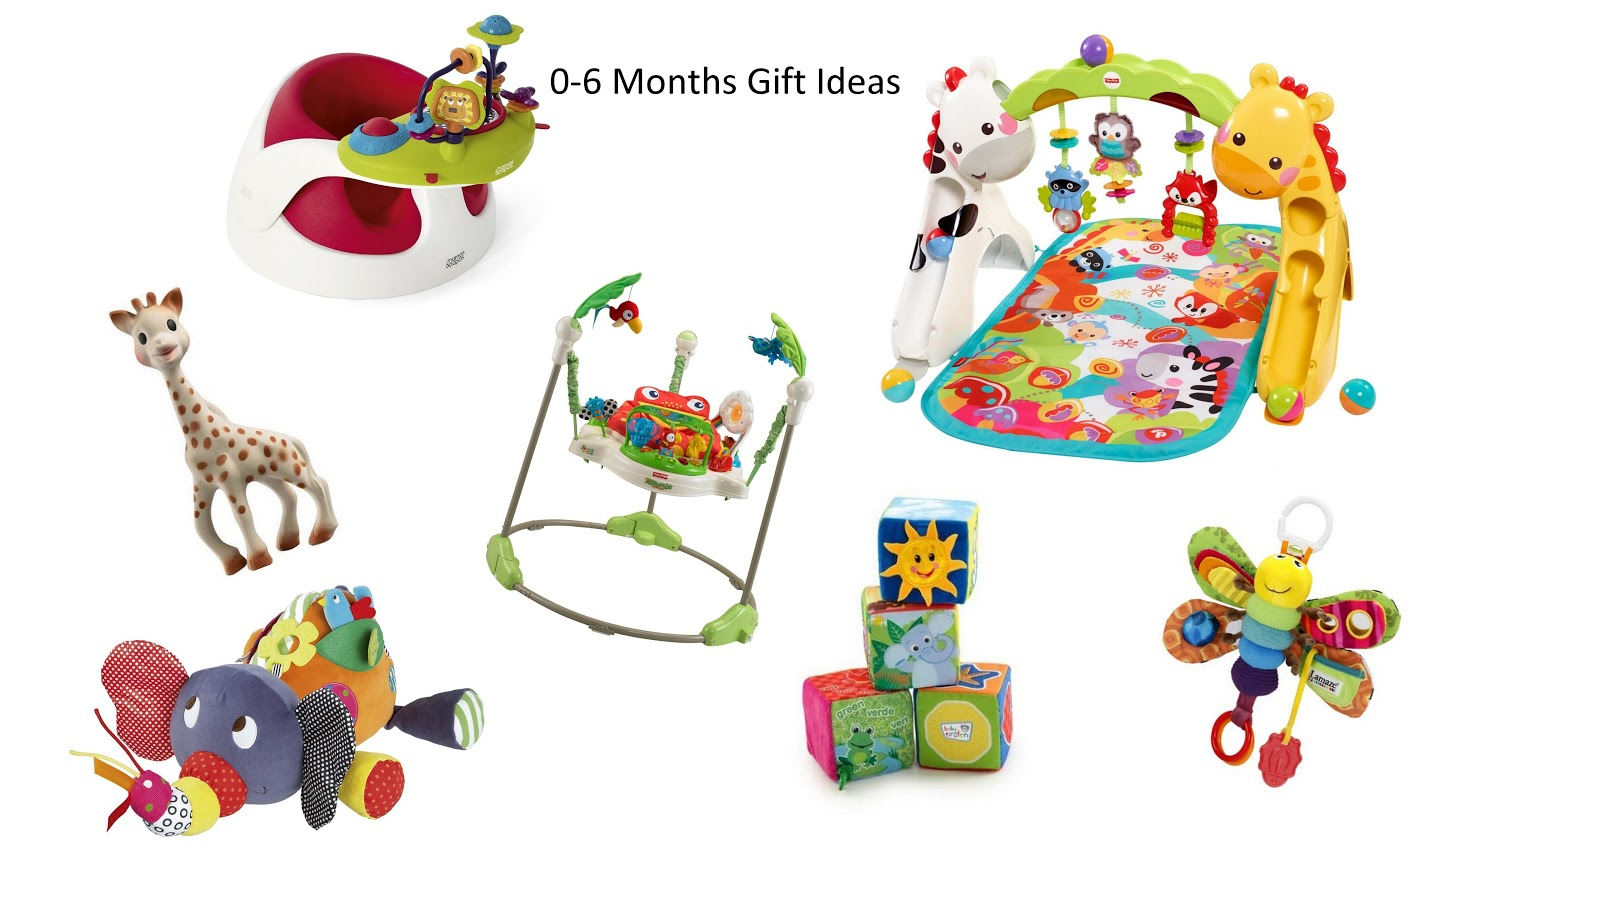 Christmas gift ideas for 4 month old baby